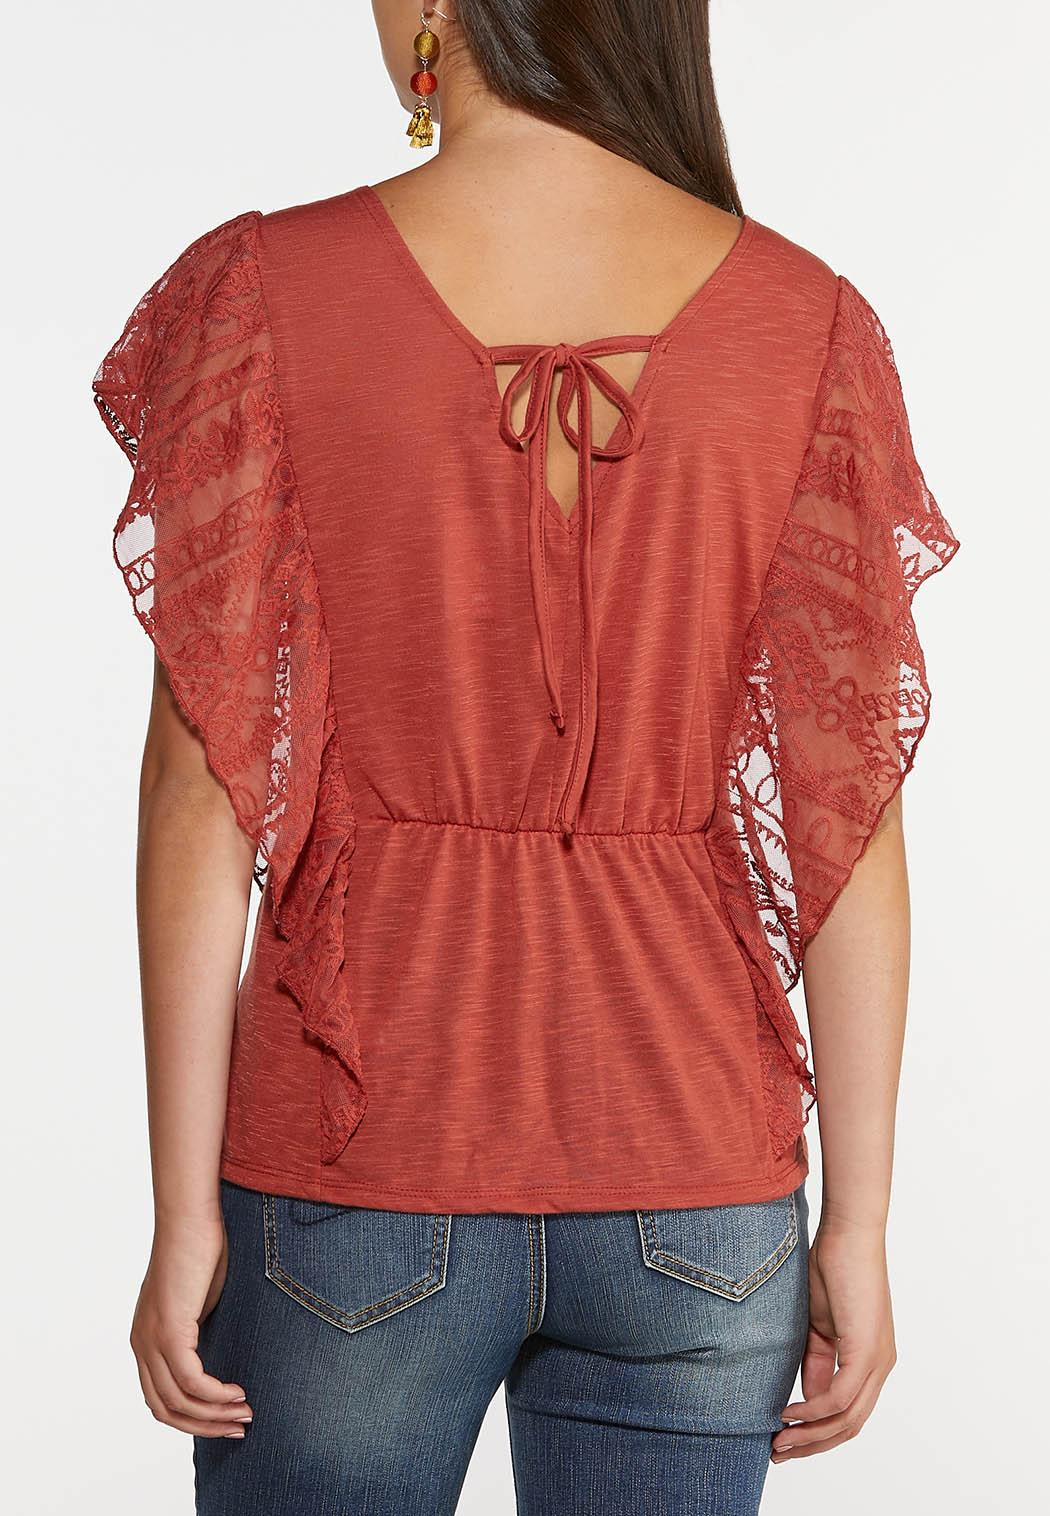 Plus Size Rust Lace Ruffle Top (Item #44348542)